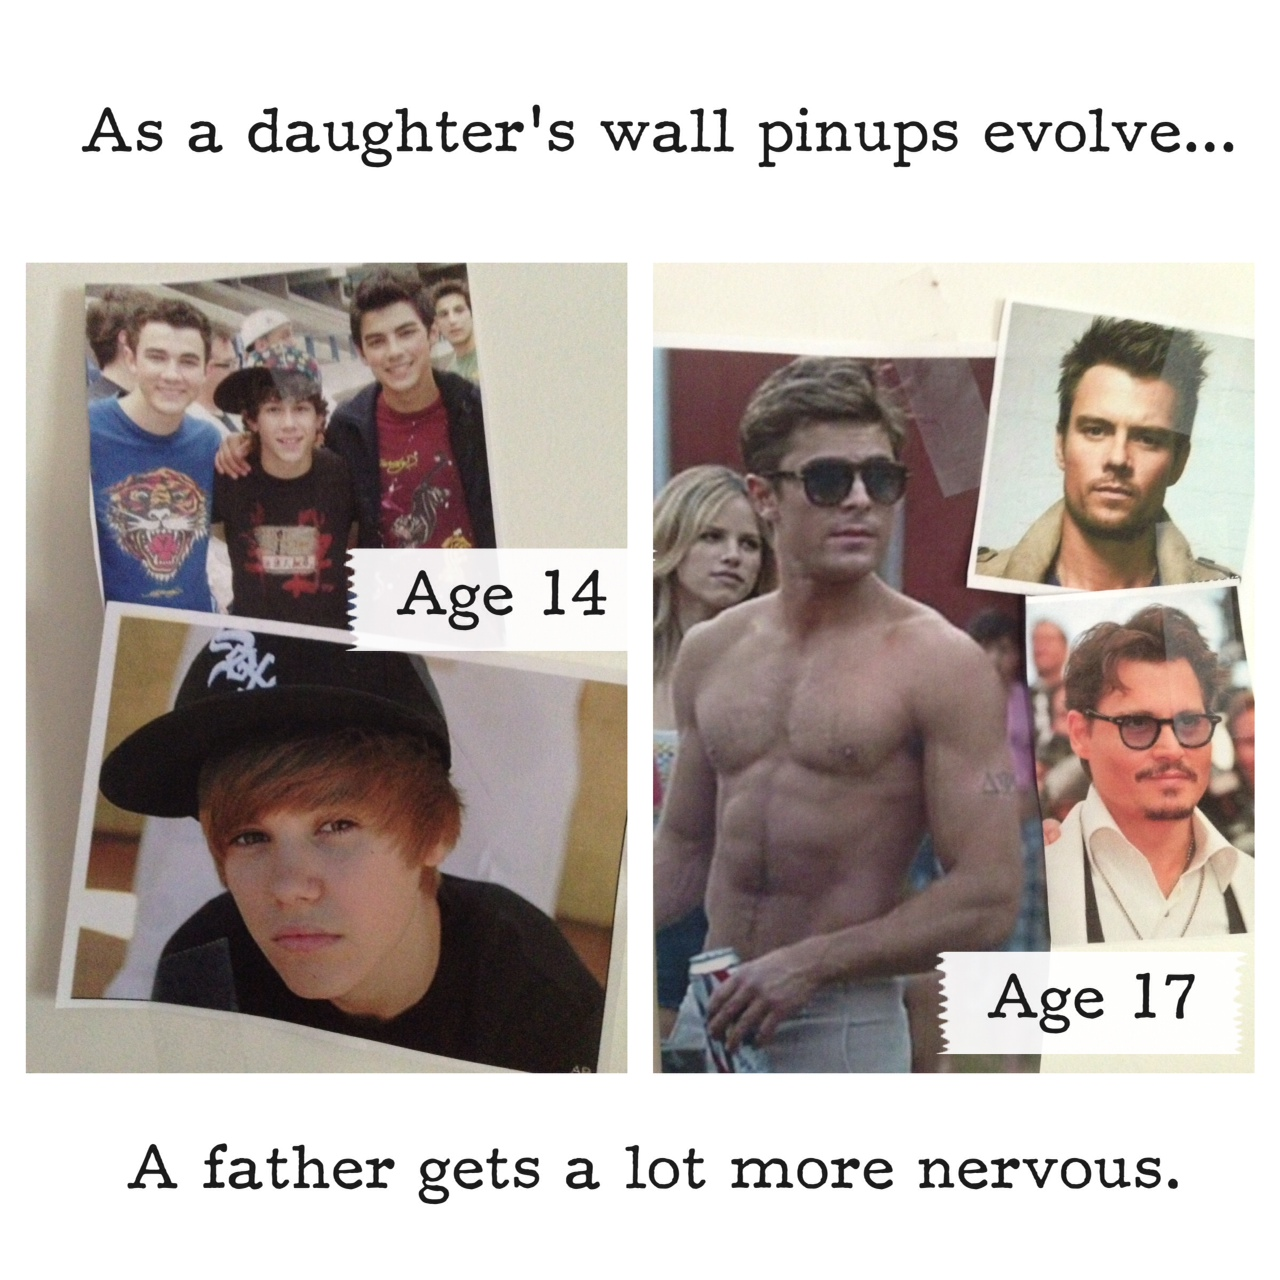 A daughter's wall posters evolve from boy musicians to beefcake.